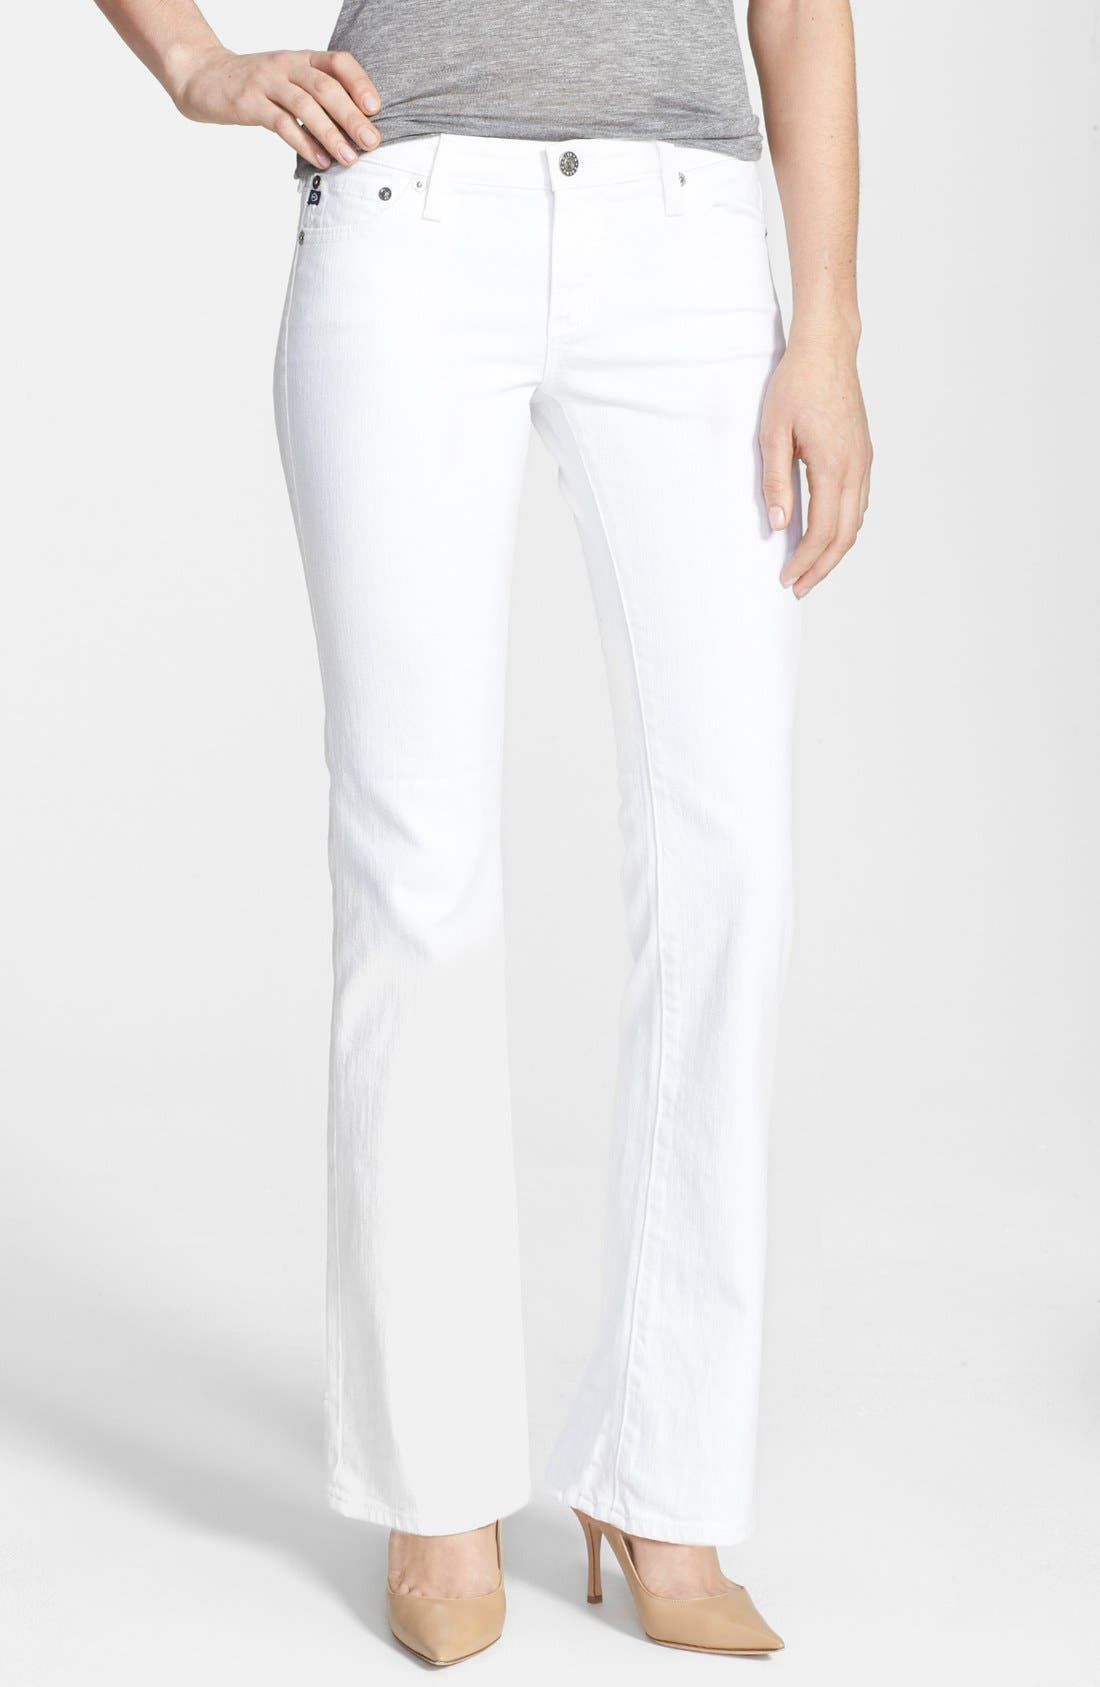 Main Image - AG 'Angelina' Bootcut Jeans (Petite) (White)